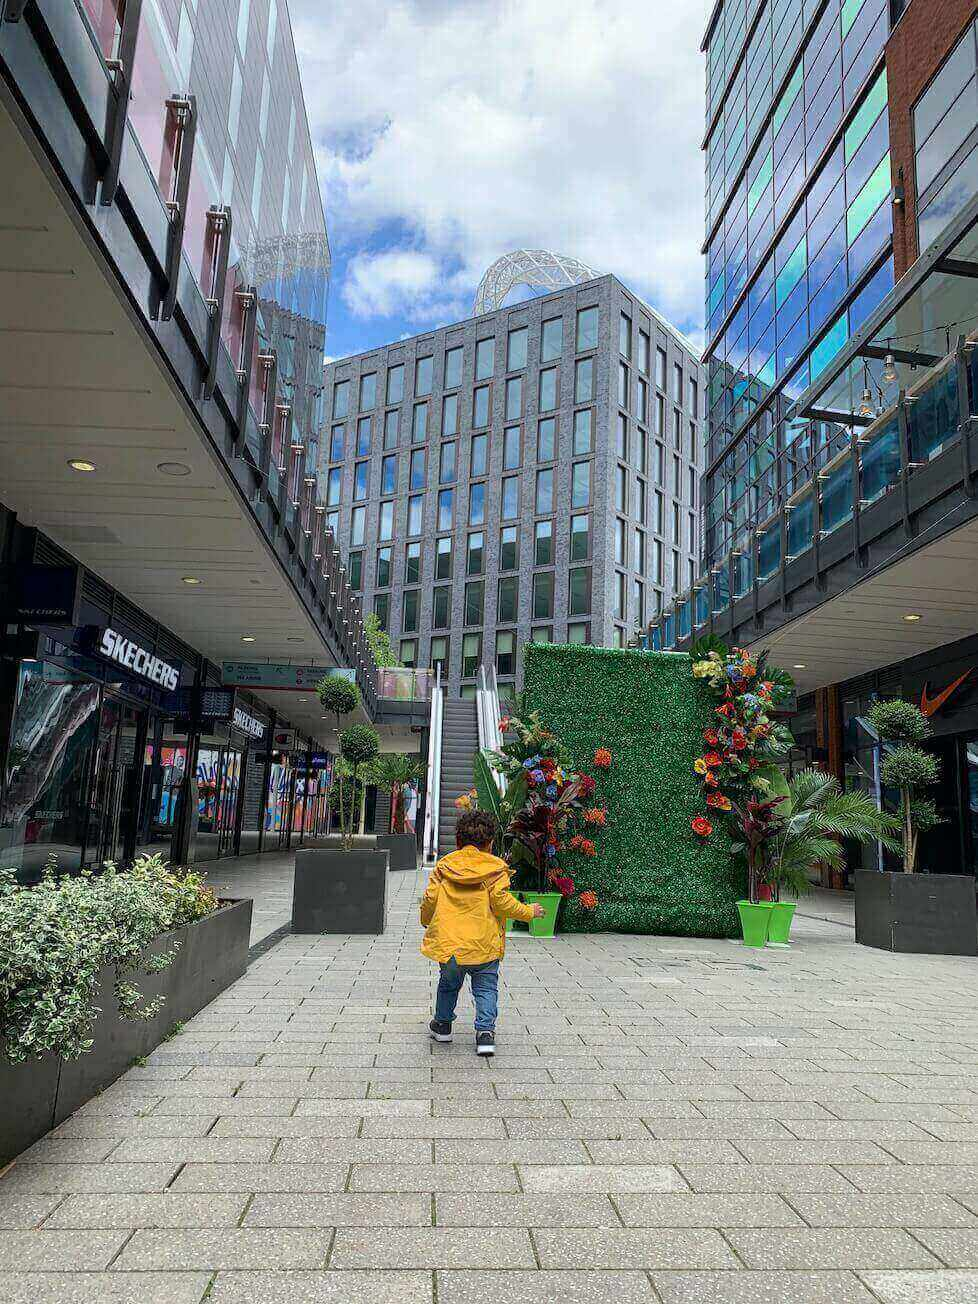 Wembley Park uses its outdoor space to appeal to fearful shoppers